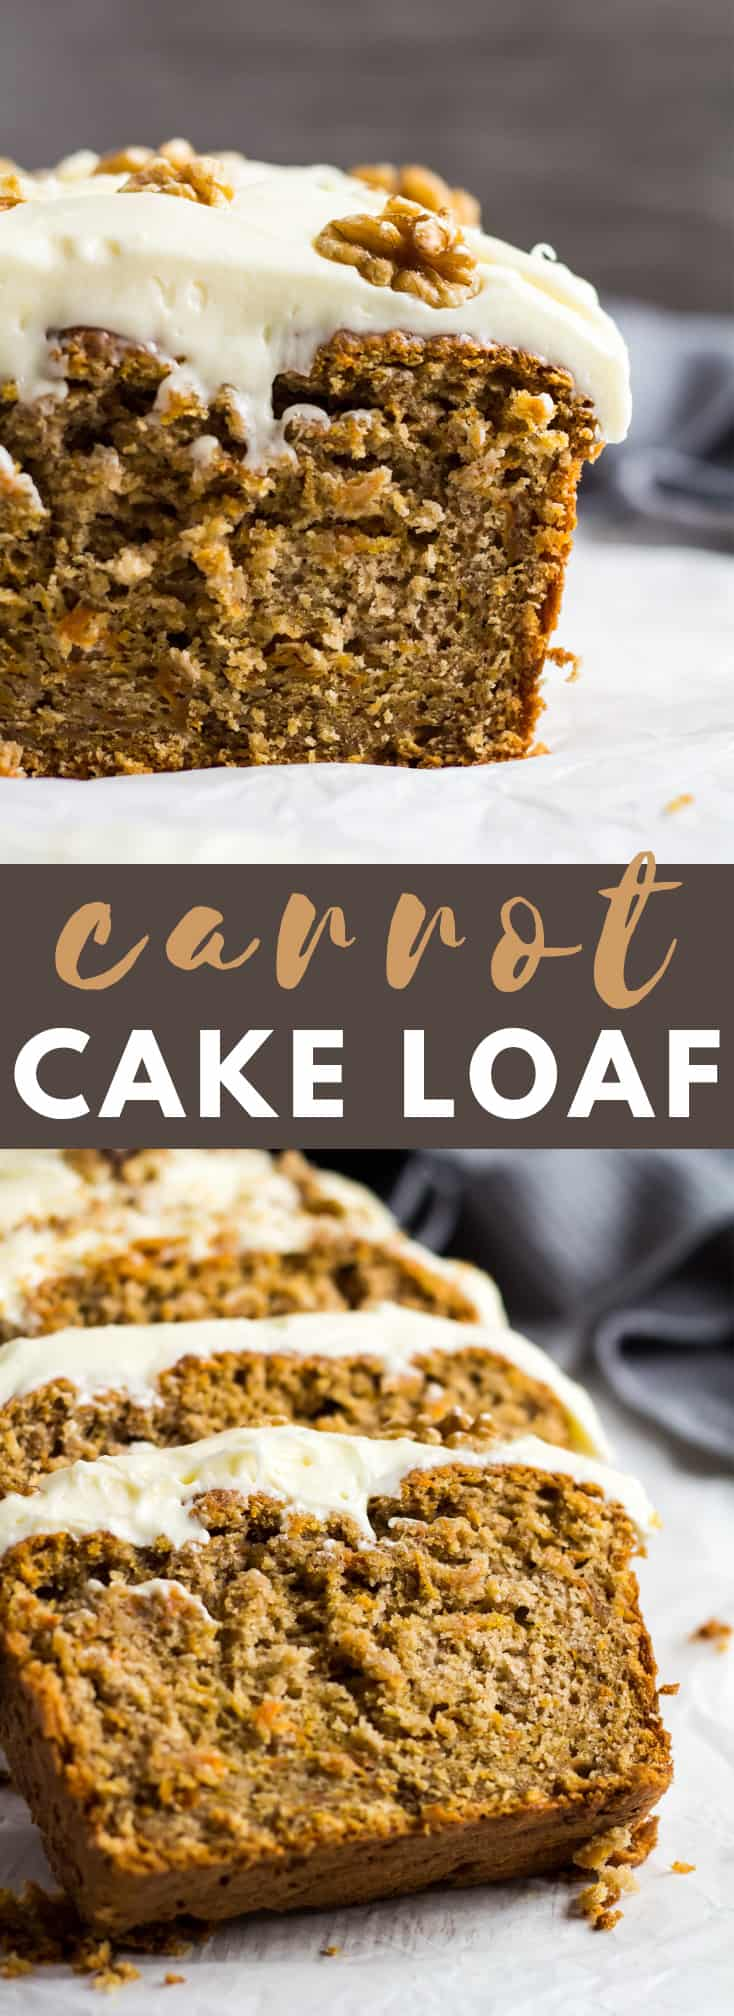 Carrot Cake Loaf - An incredibly moist and delicious carrot cake loaf that is packed full of flavour, loaded with grated carrot, and topped with a thick cream cheese frosting!